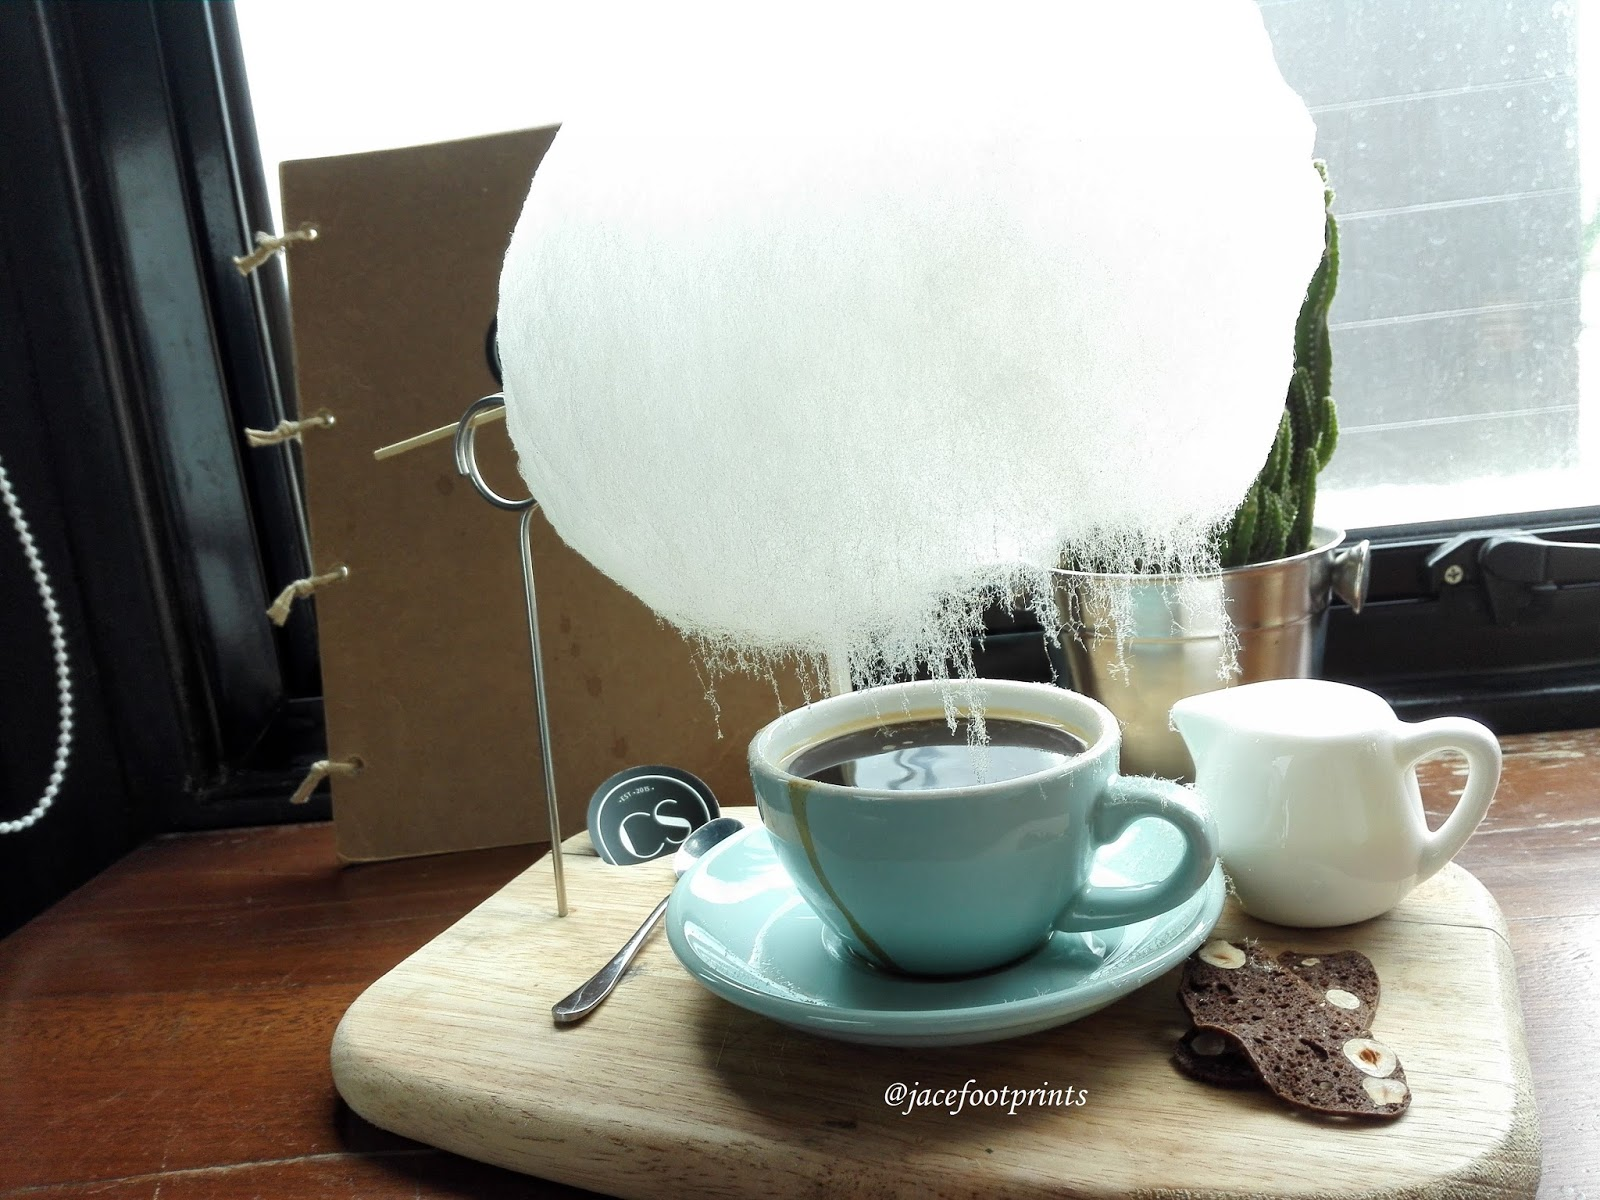 Jb Malaysia Coffee Signature Container Cafe In Pelangi Johor Just Another Delicious Experience Around The World